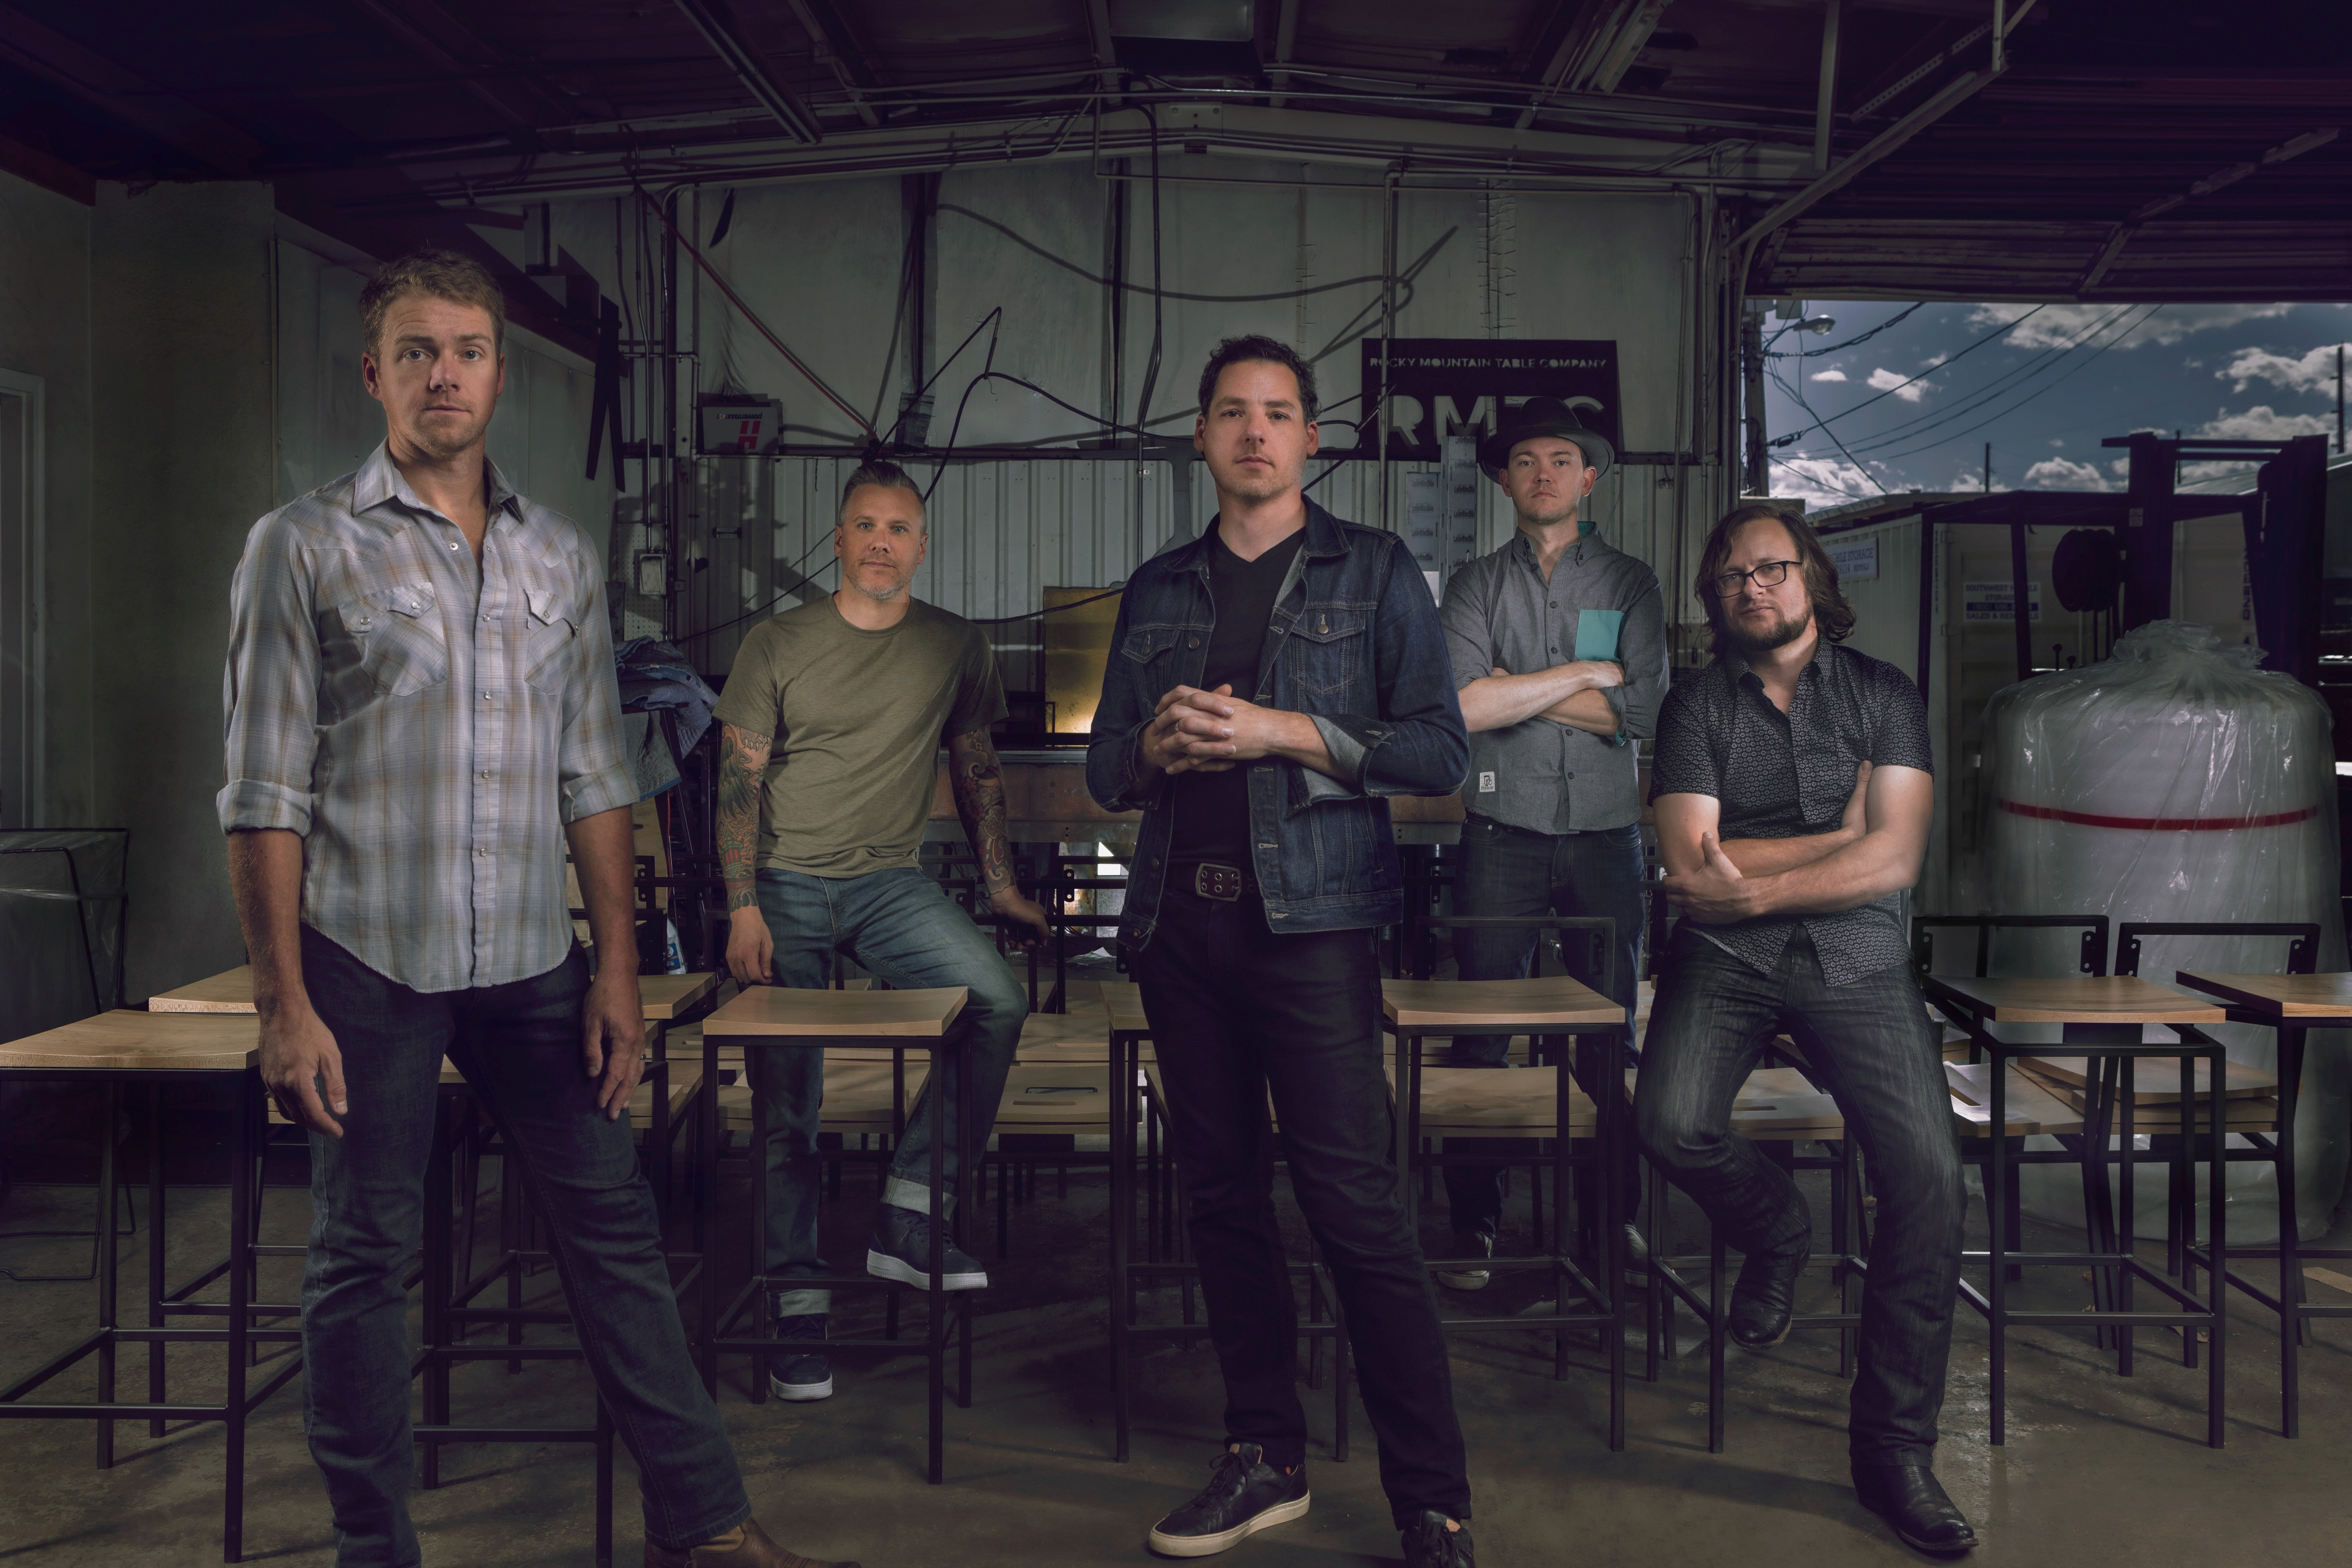 In top form, The Infamous Stringdusters' bring album release show to Orange Peel Friday